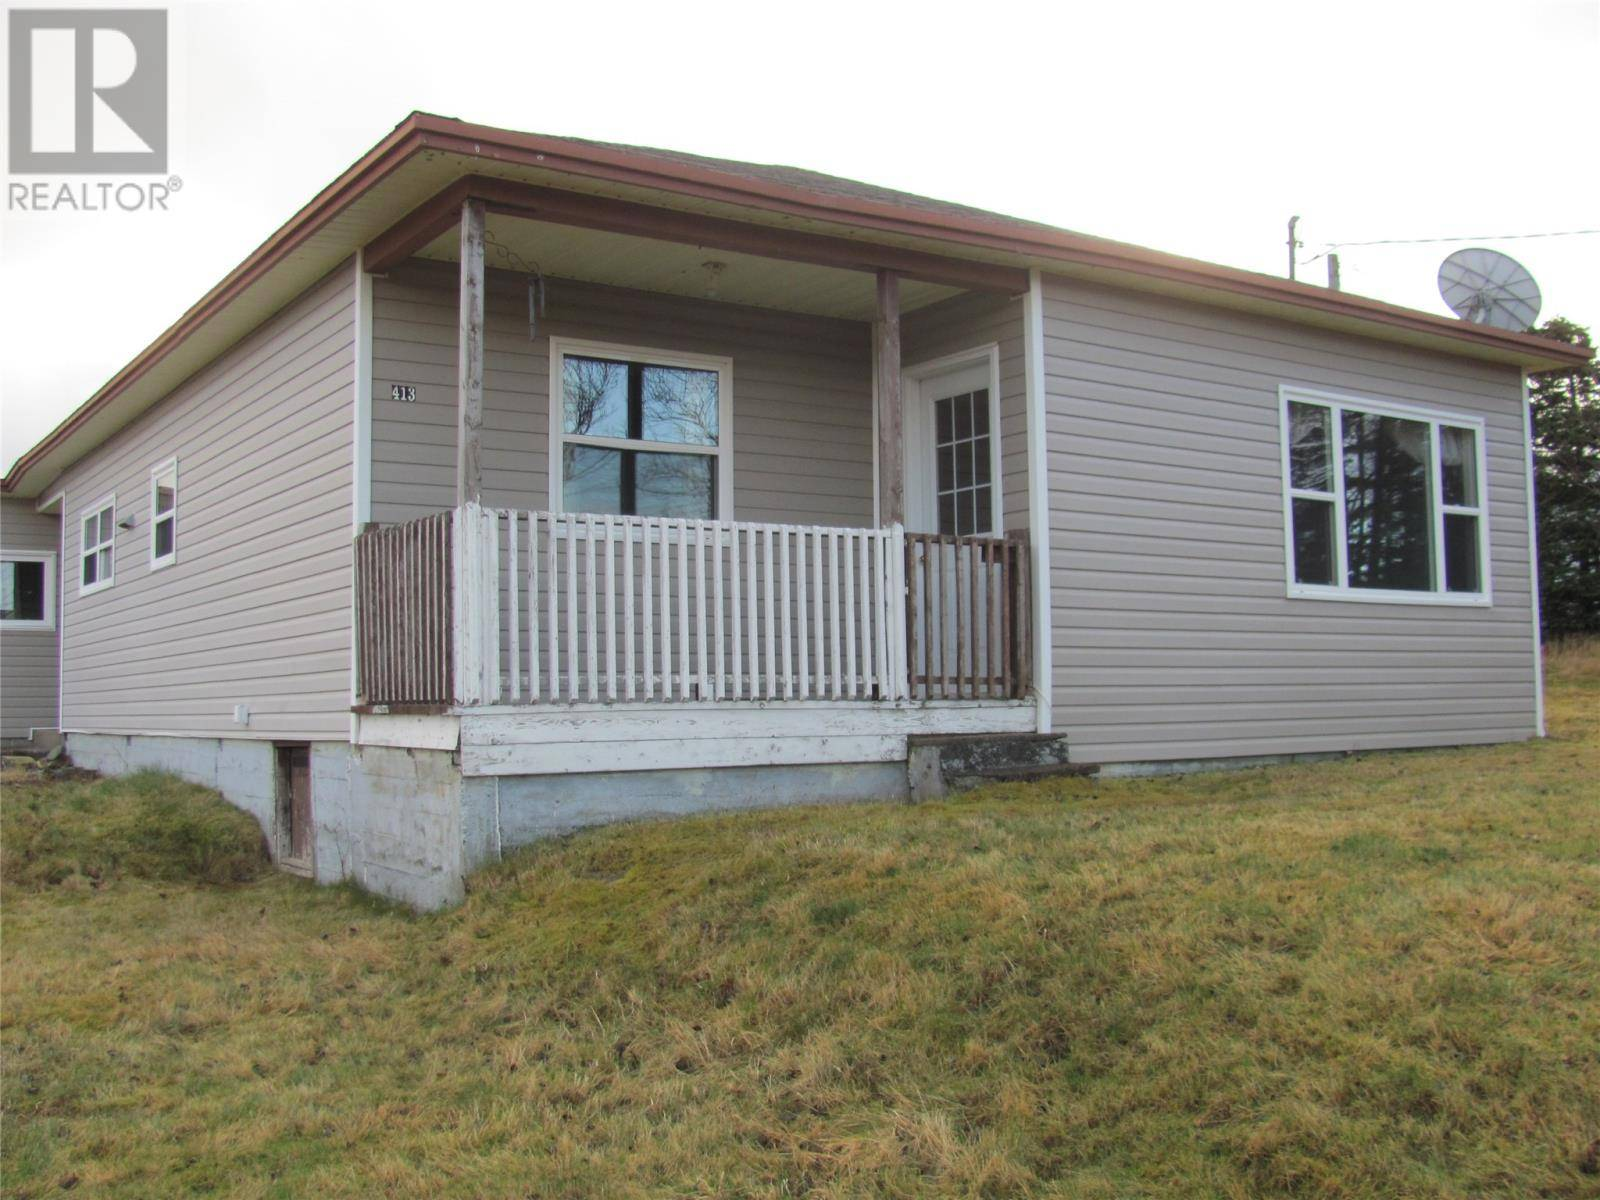 House for sale at 413 Thorburn Rd St. John's Newfoundland - MLS: 1209453